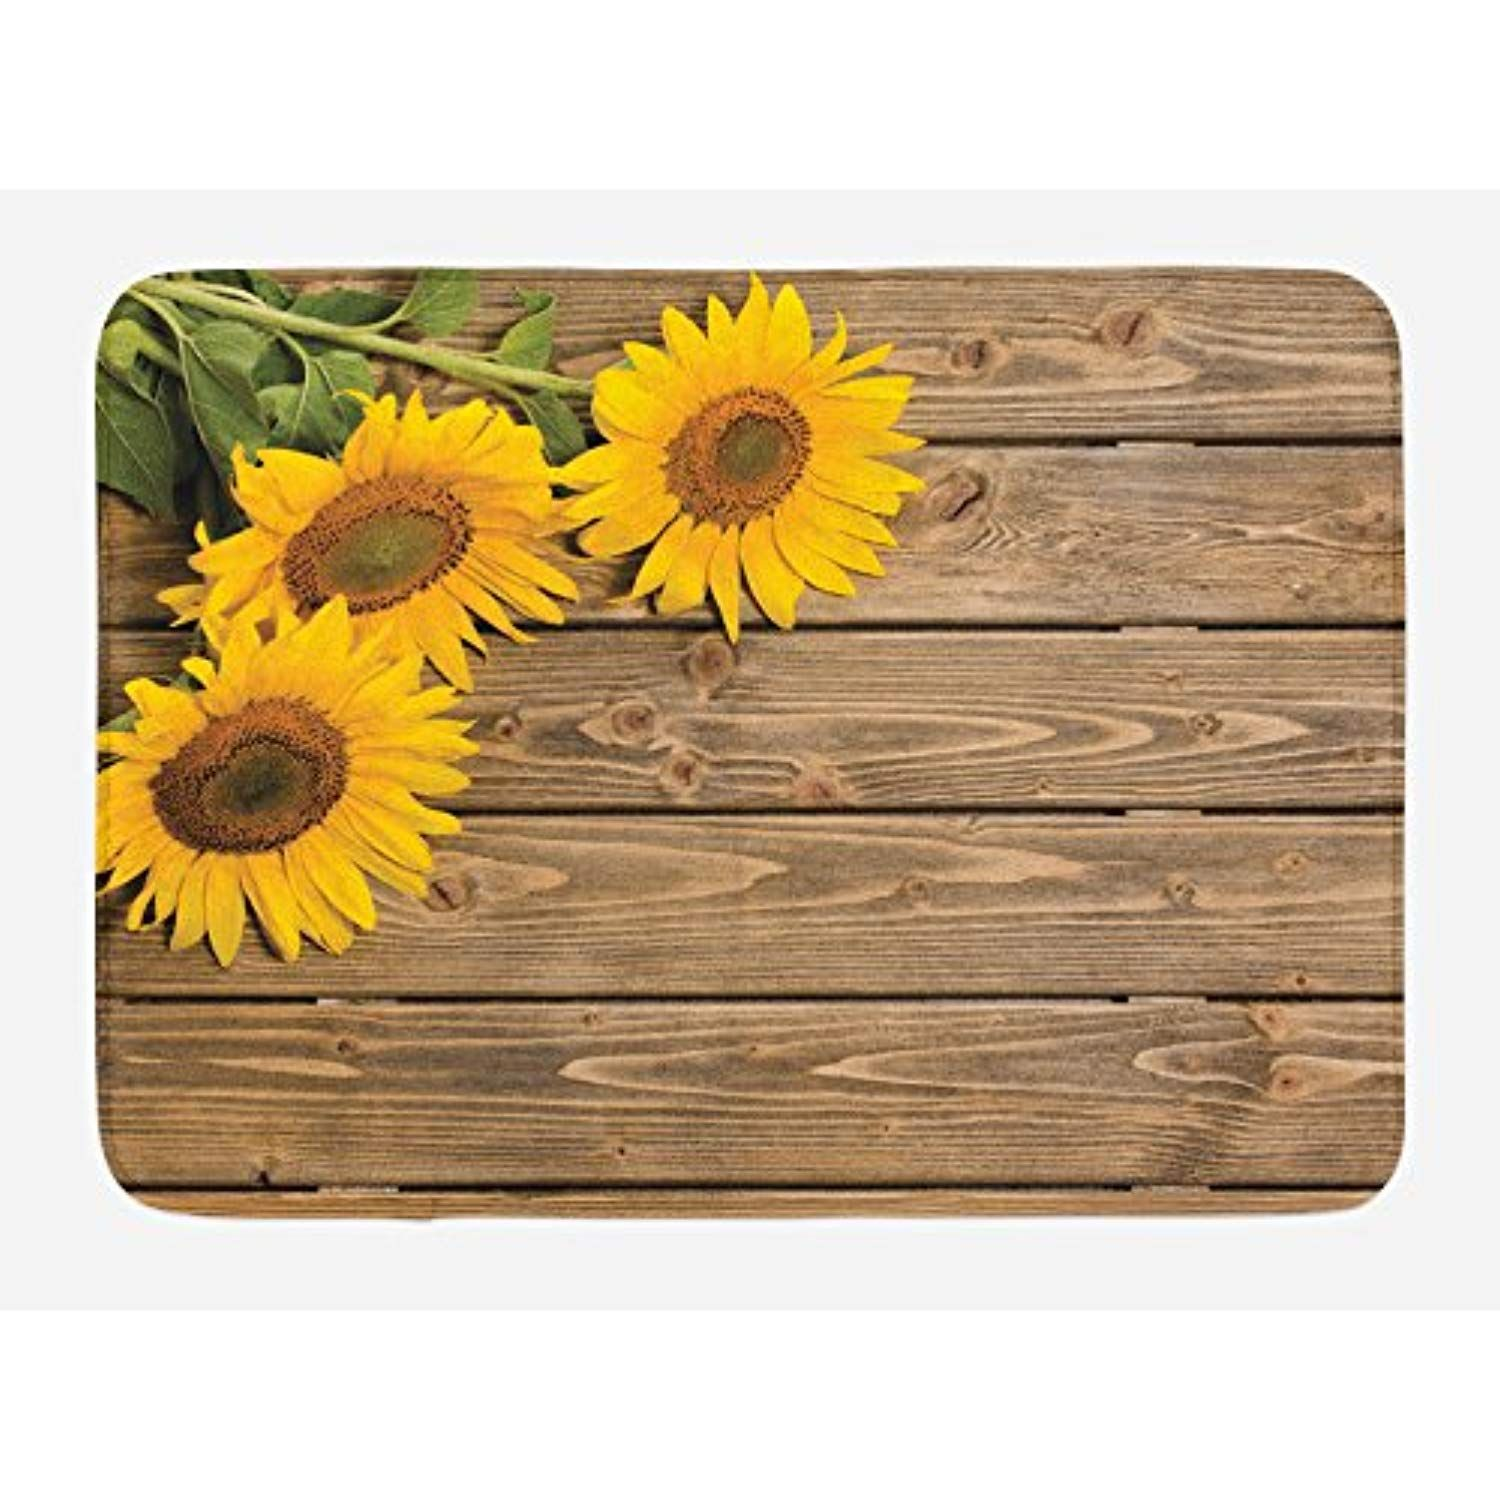 Lunarable sunflower bath mat three sunflowers on wooden background